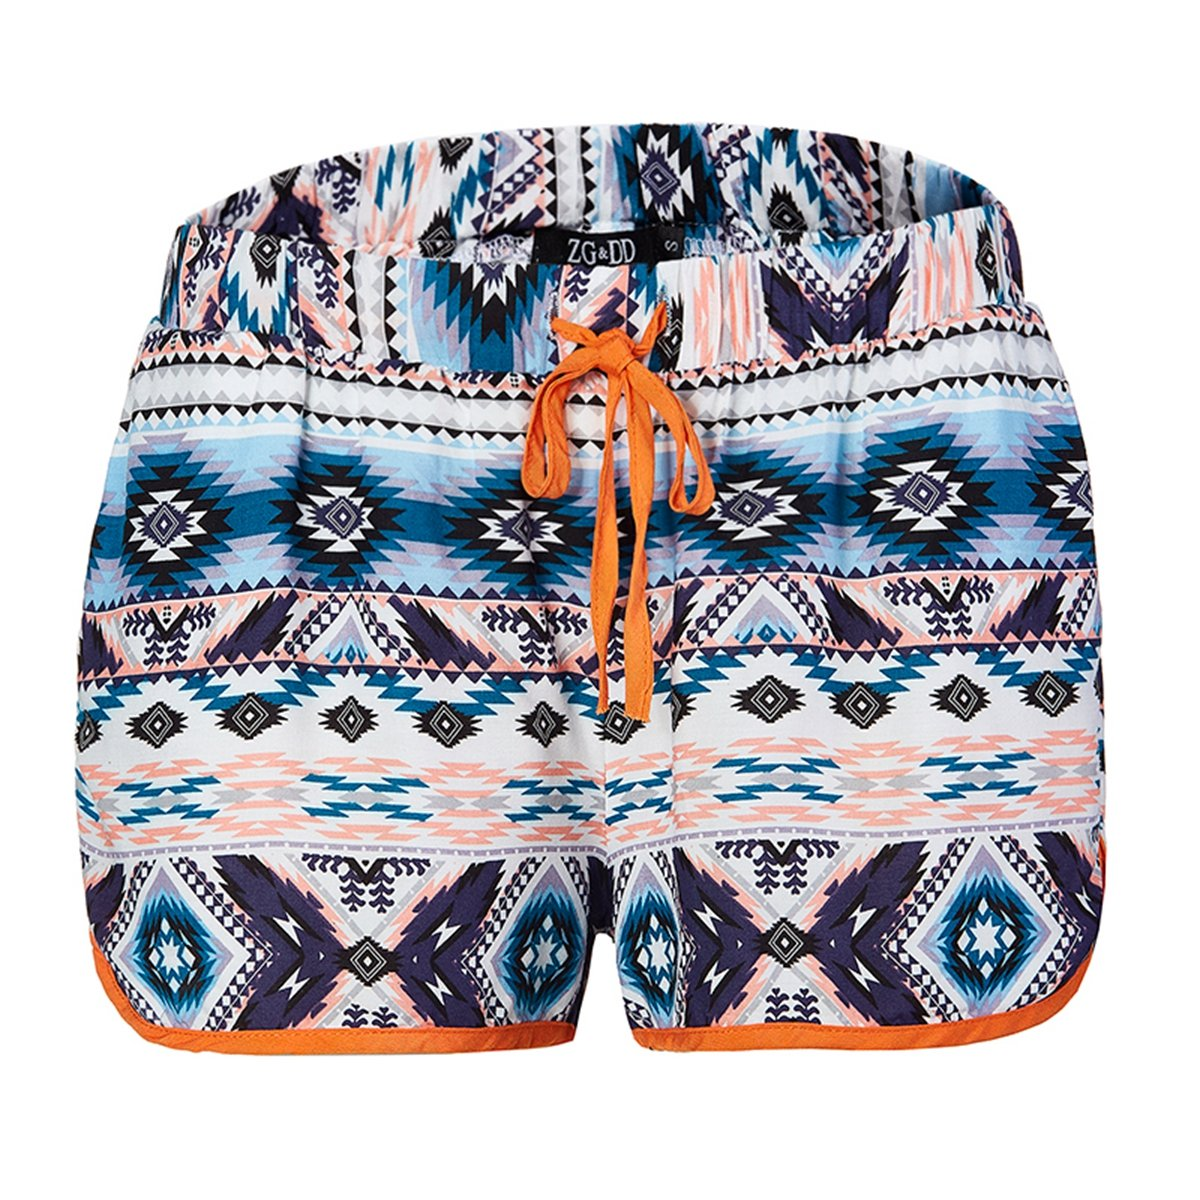 ZG&DD Women's Sexy Hot Pants Fast Dry Summer Casual Surf High Waisted Shorts Swimming Shorts (XL, Color-6)